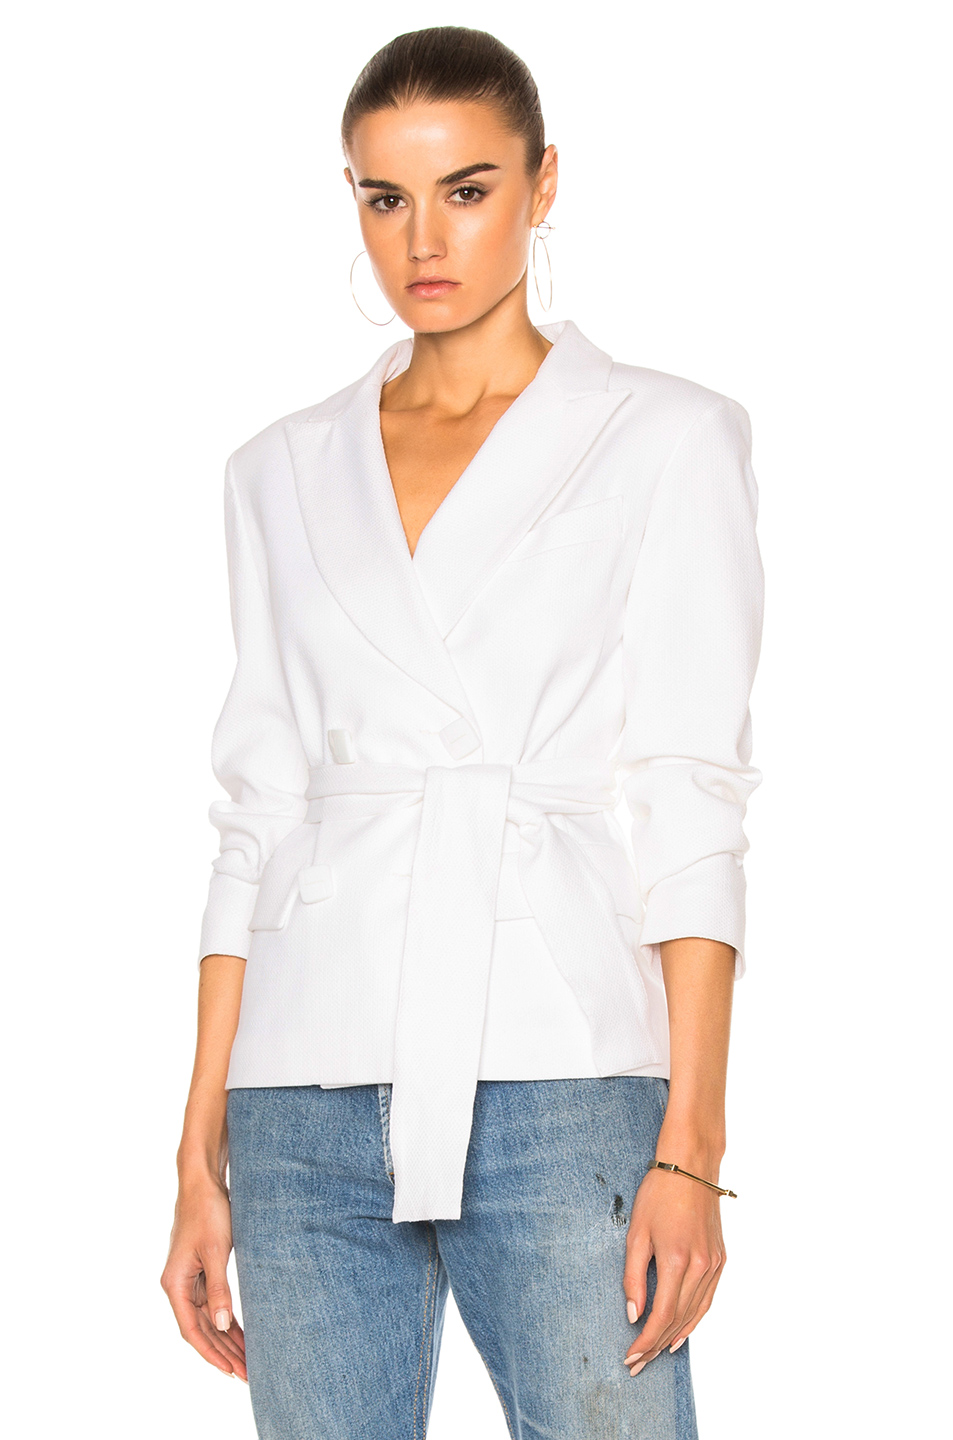 Carolina Ritzler Marie Francoise Jacket in White